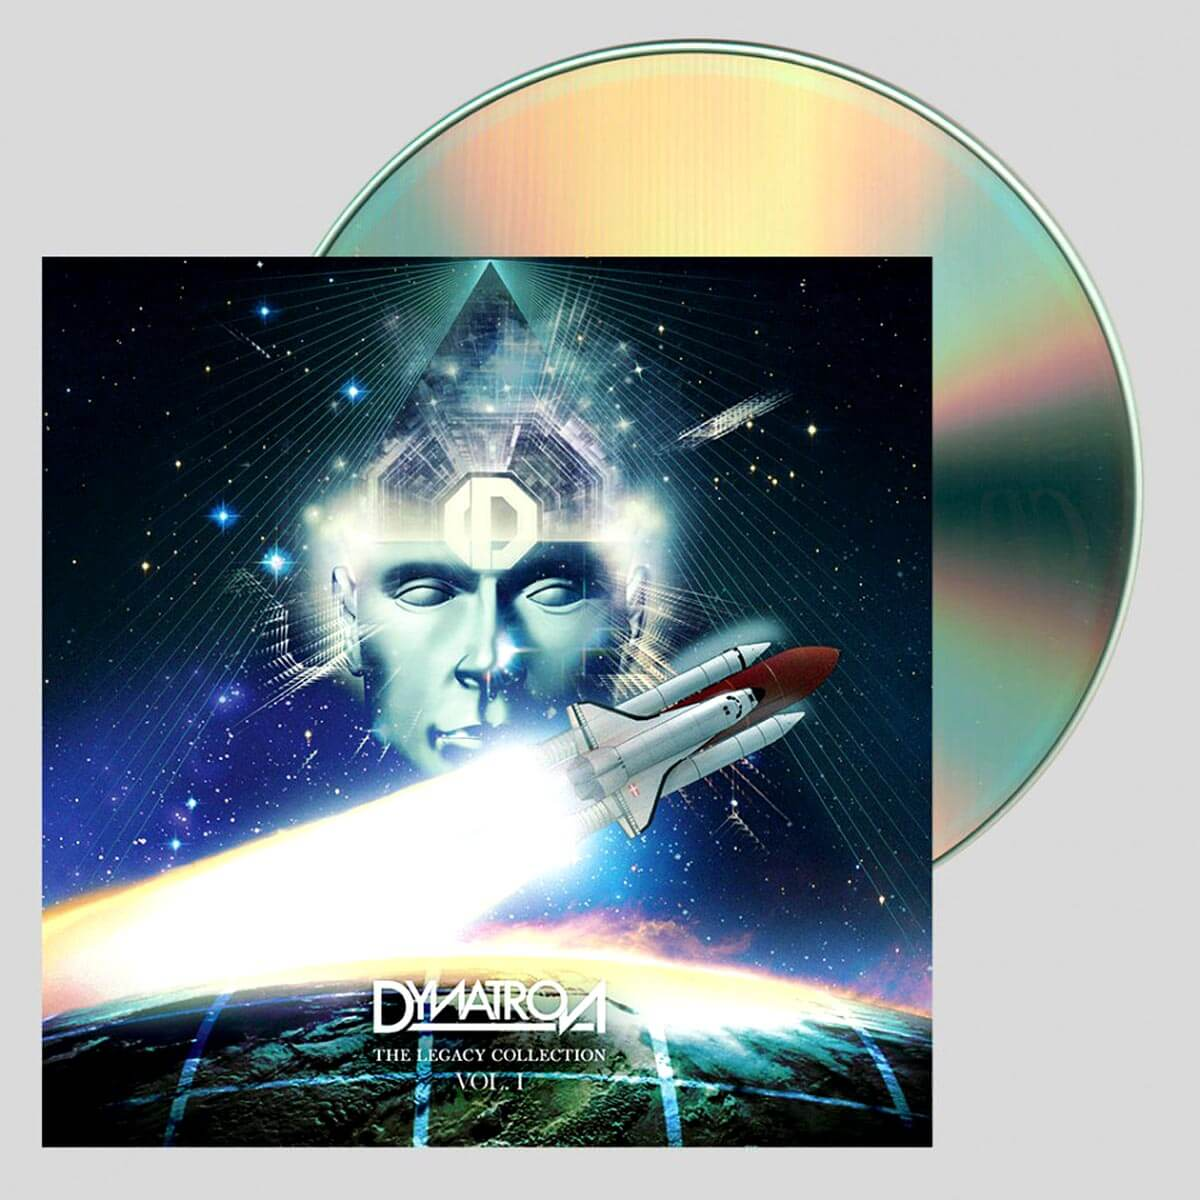 dynatron the legacy collection vol i CD